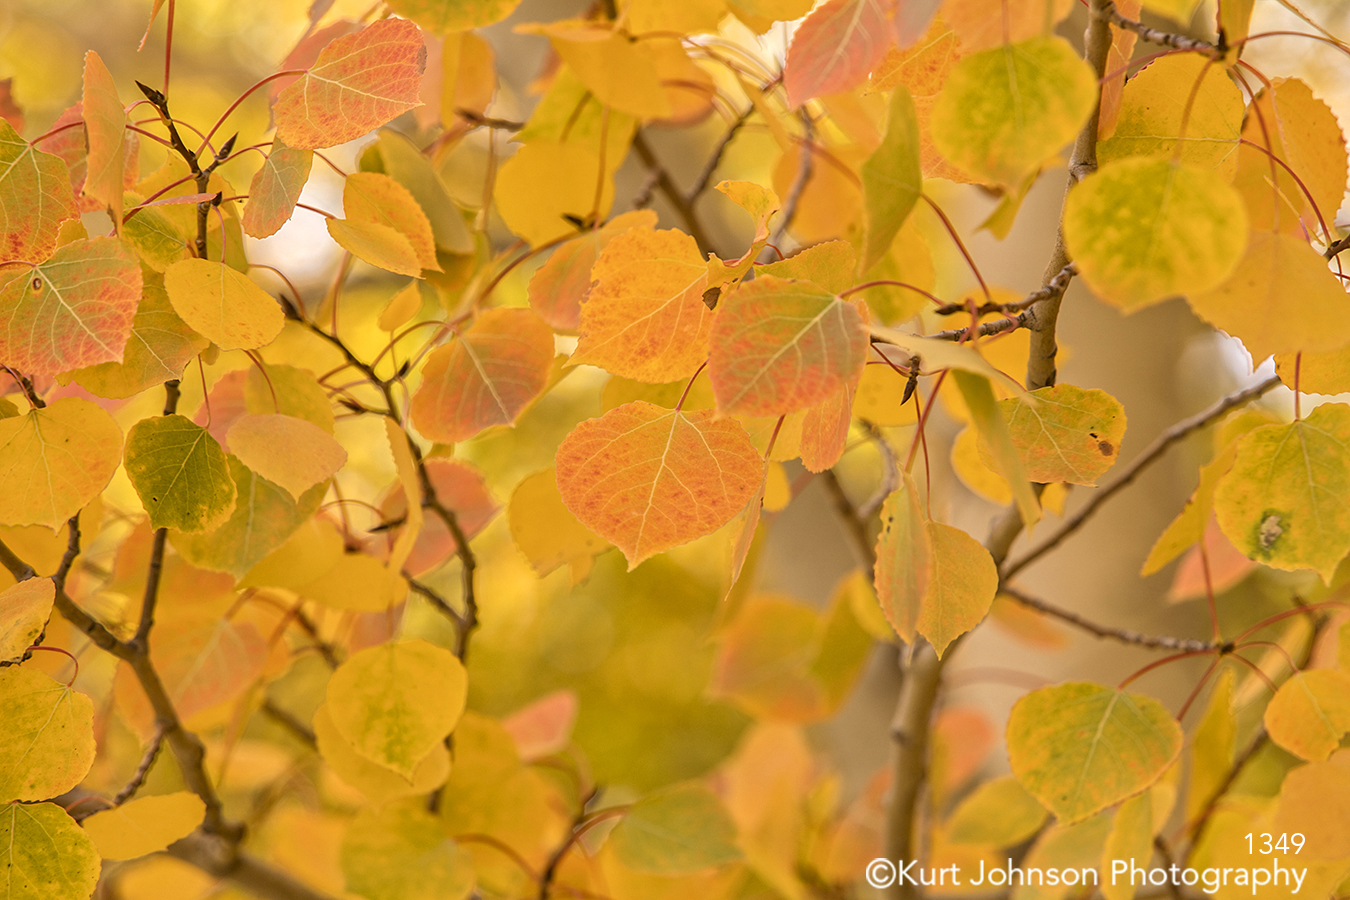 orange yellow autumn fall leaves close up detail branches trees